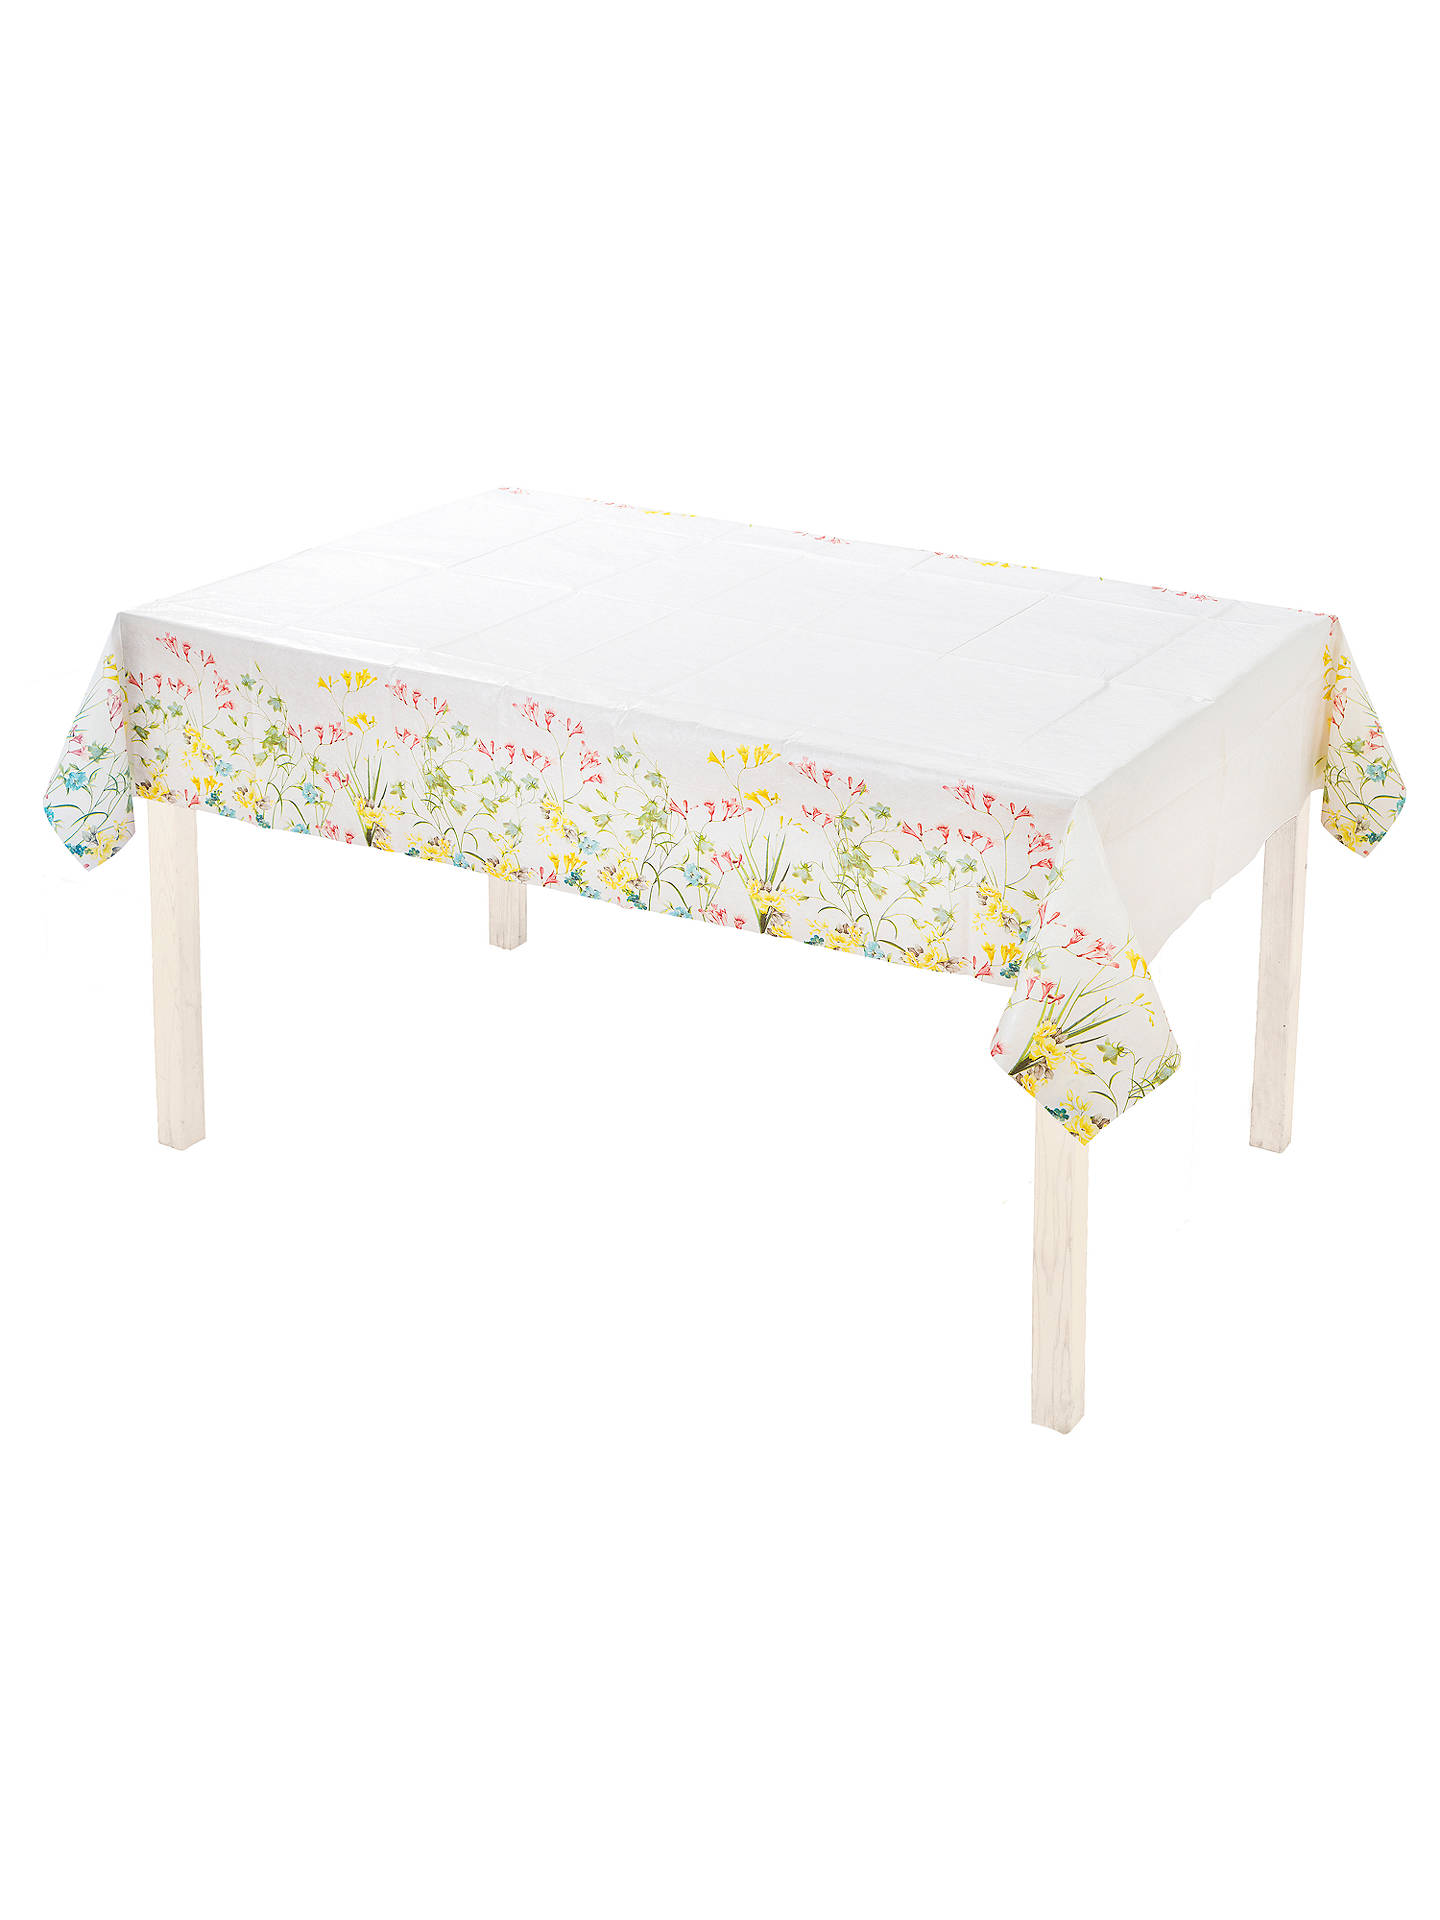 BuyTalking Tables Truly Bunny Tablecover Online at johnlewis.com